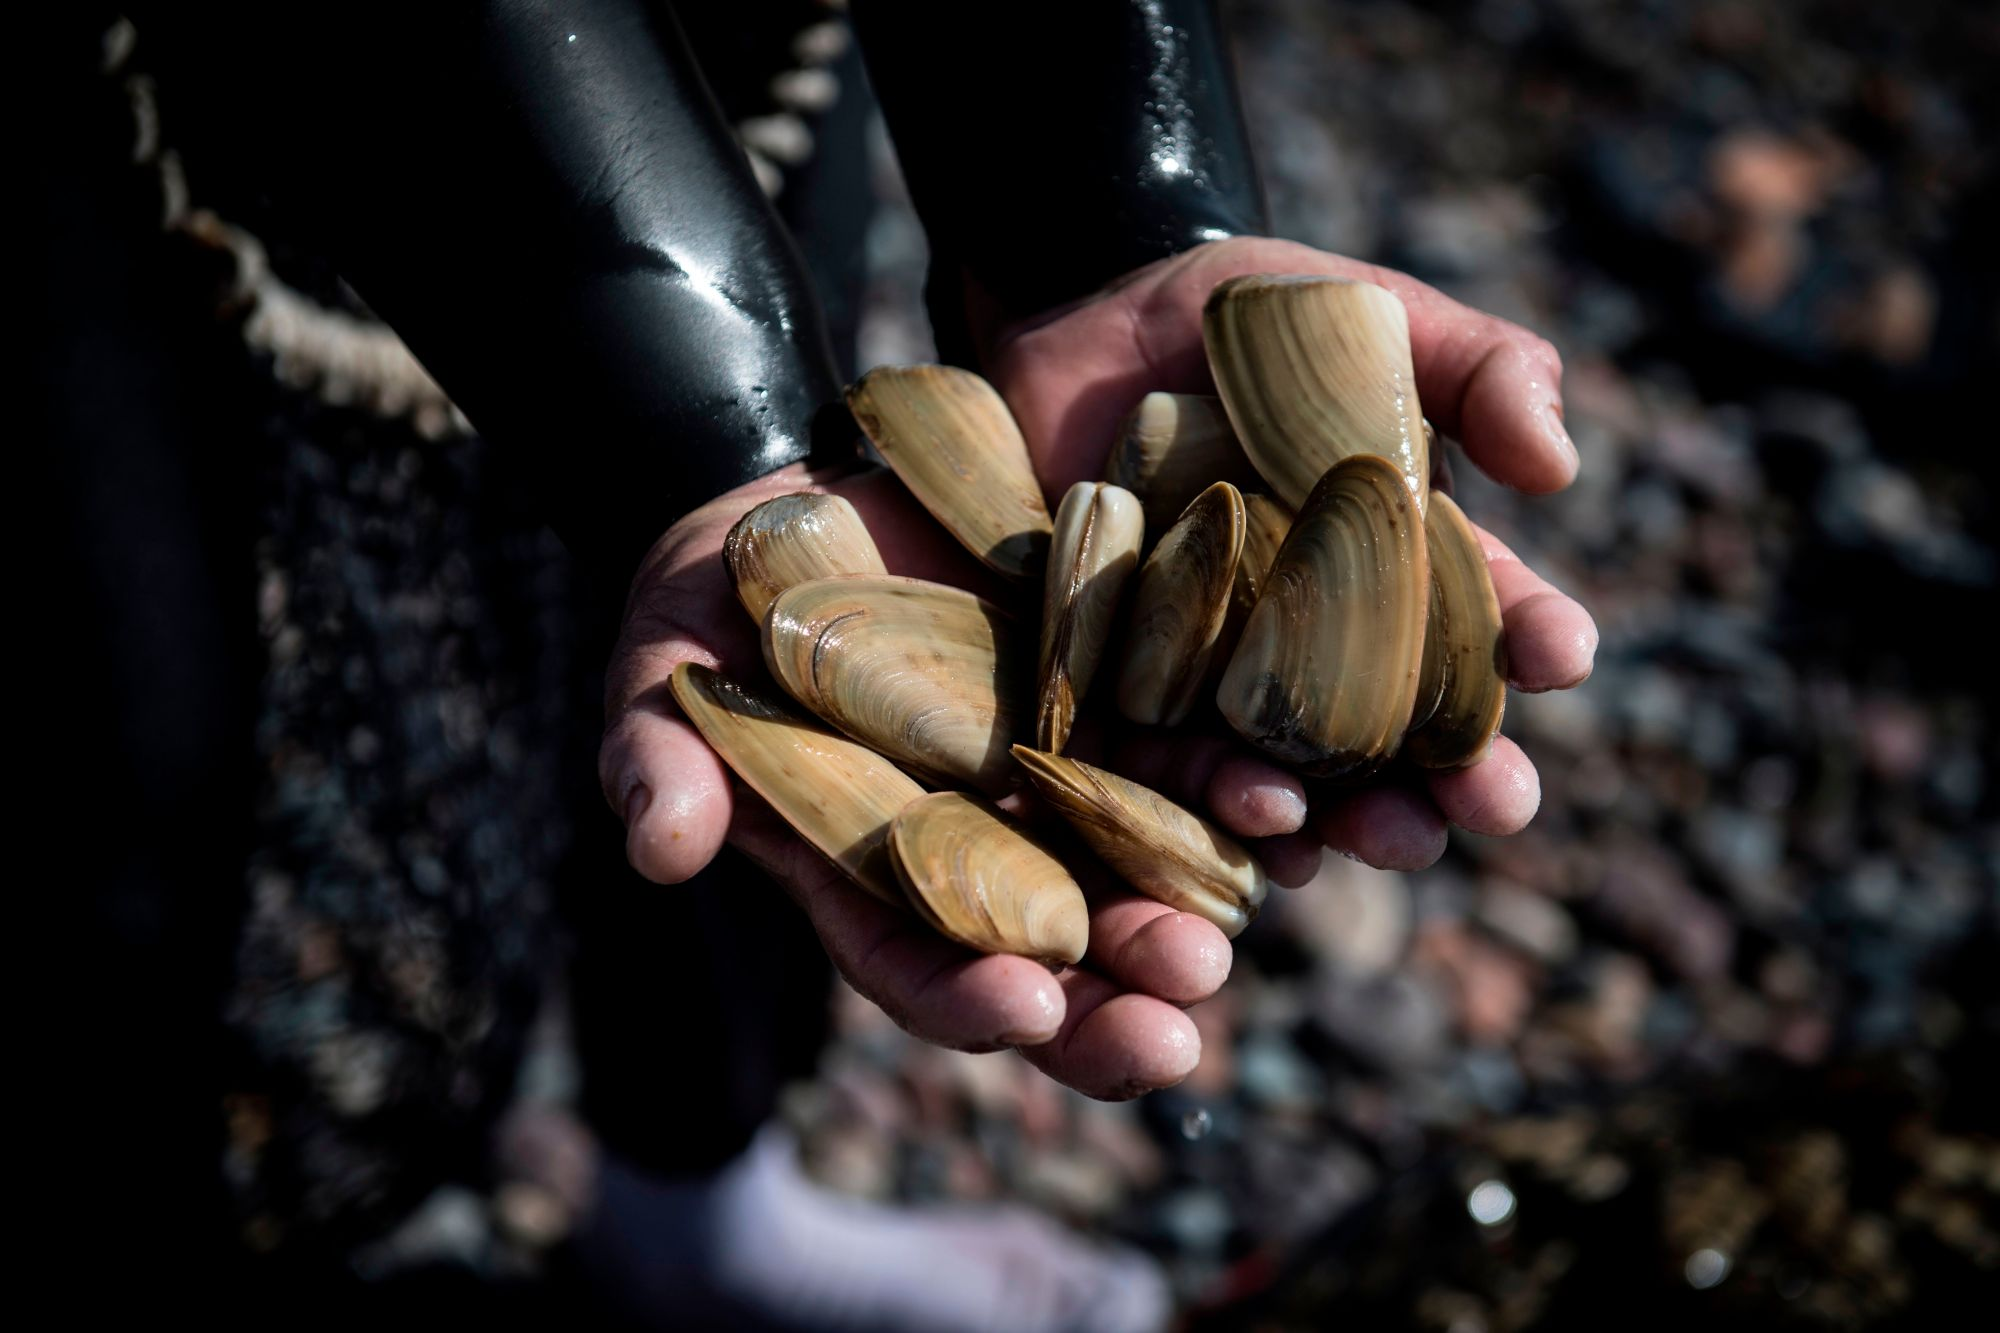 This Sept. 5, 2017 file photo shows a fisherman holding saltwater clams in Chile. (MARTIN BERNETTI/AFP via Getty Images)